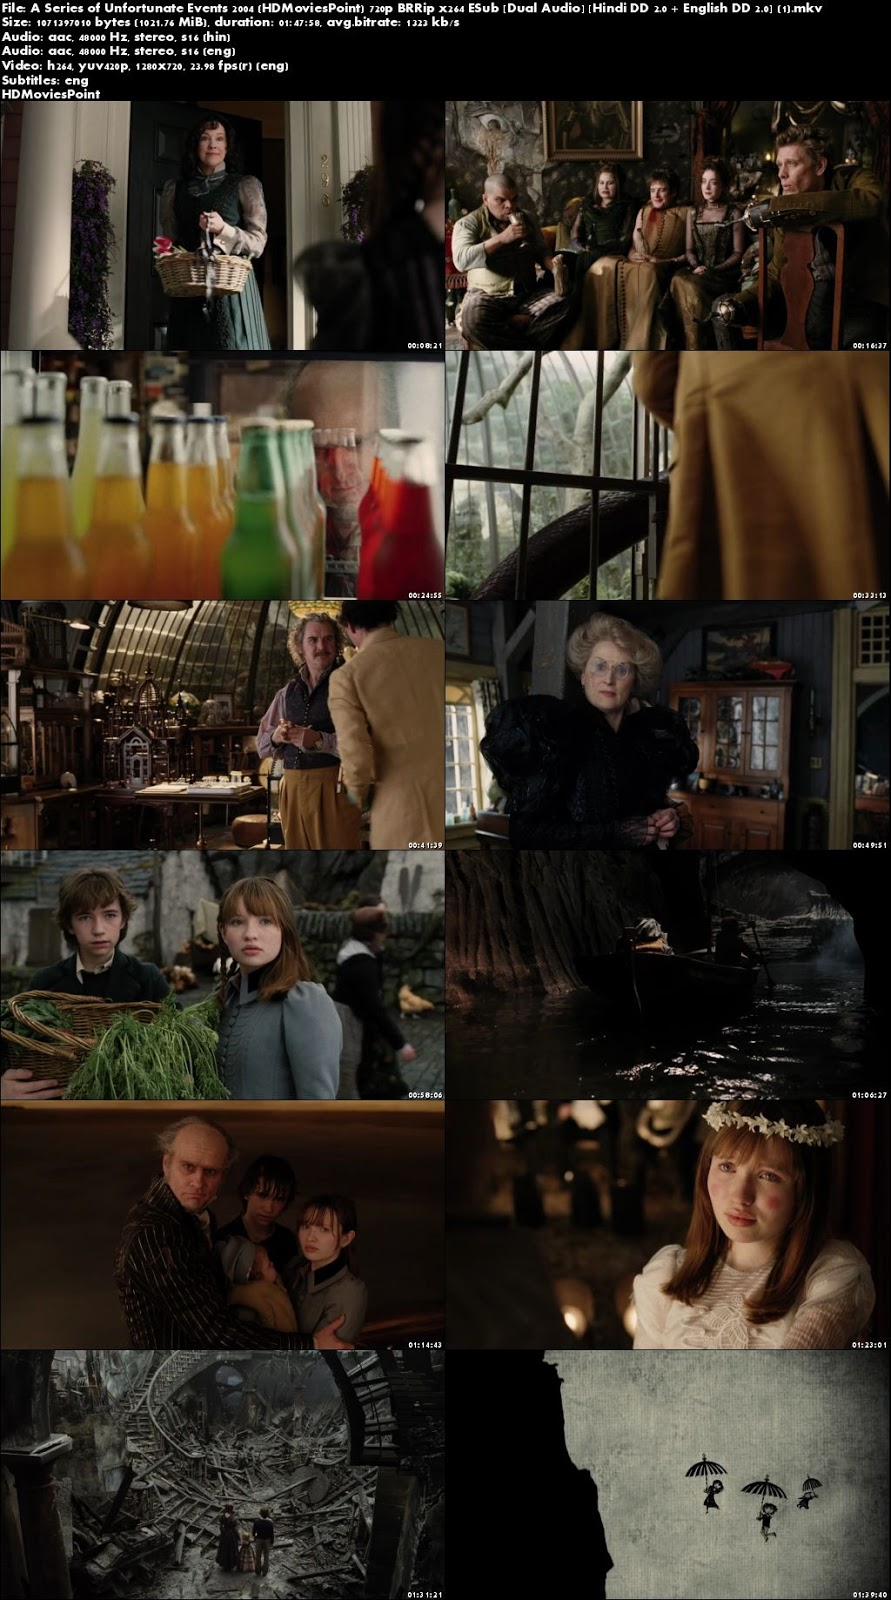 Screen Shots A Series of Unfortunate Events 2004 Full Movie Download Hindi 720p